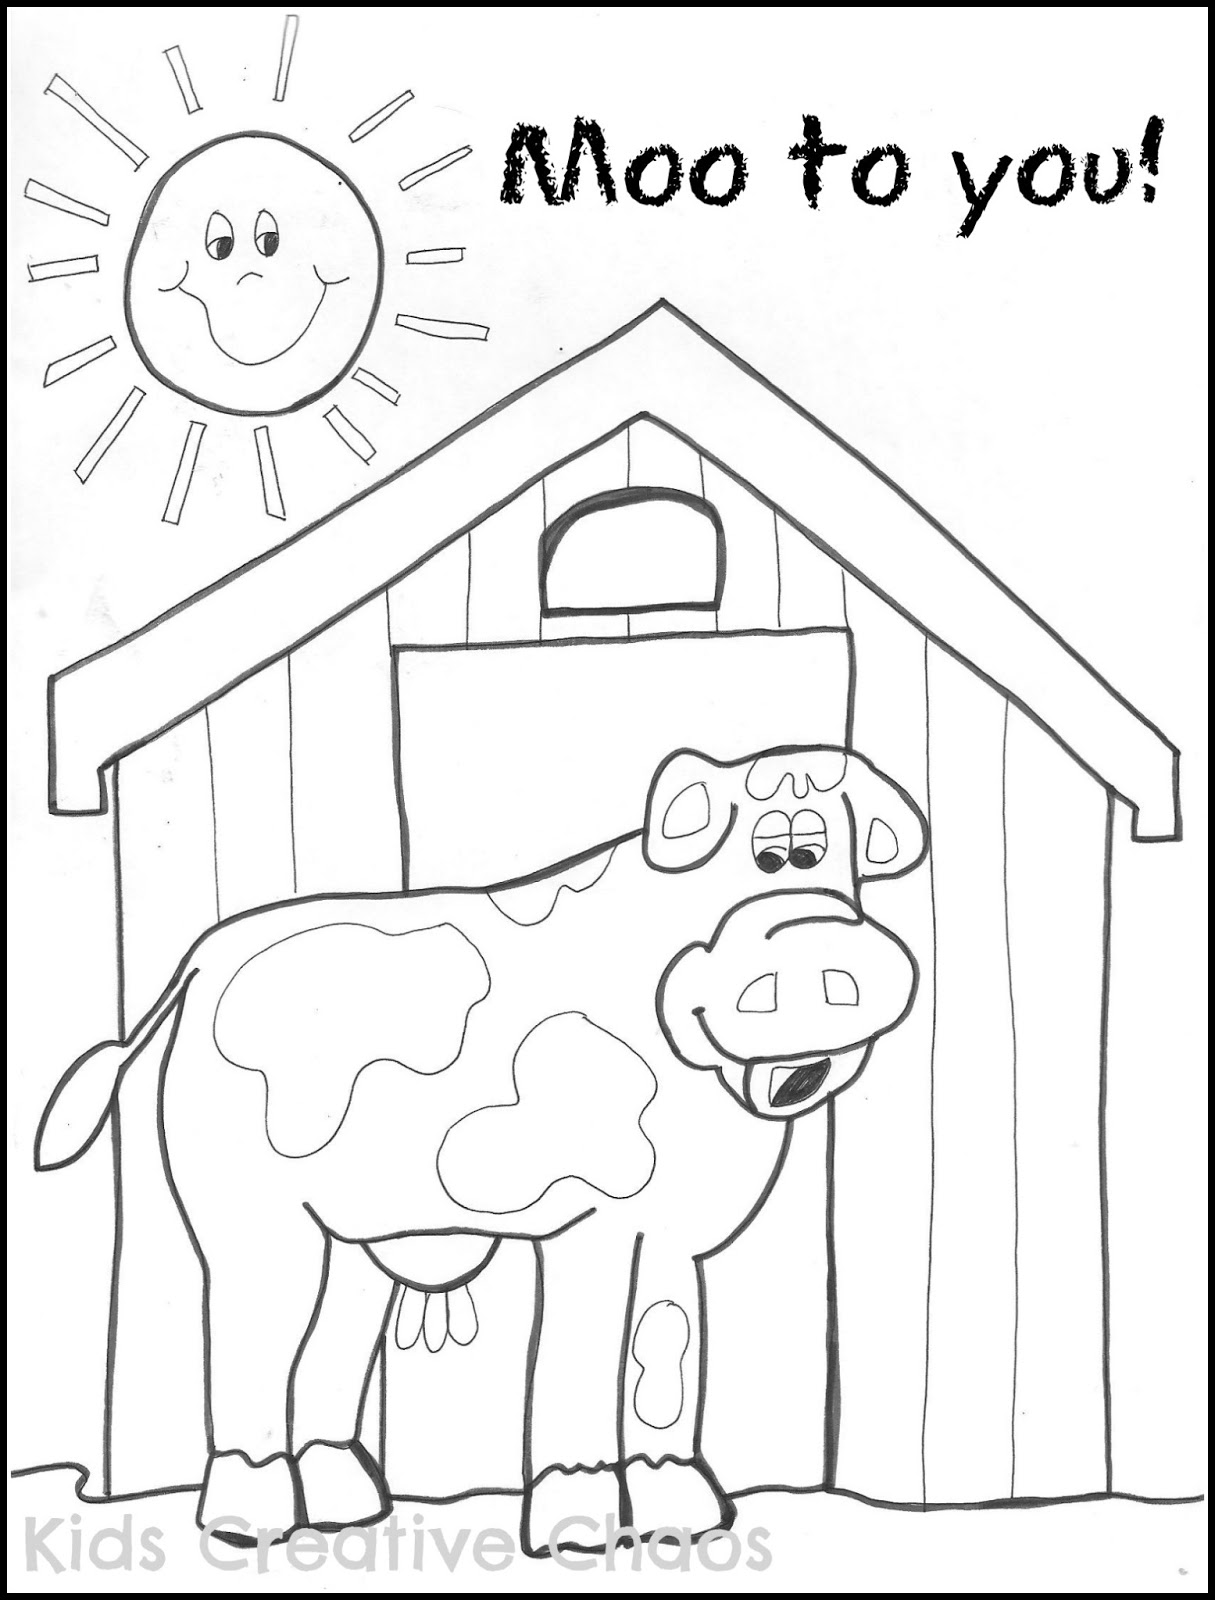 farm life coloring pages farm life coloring pages chickens and geese in the barn life coloring farm pages